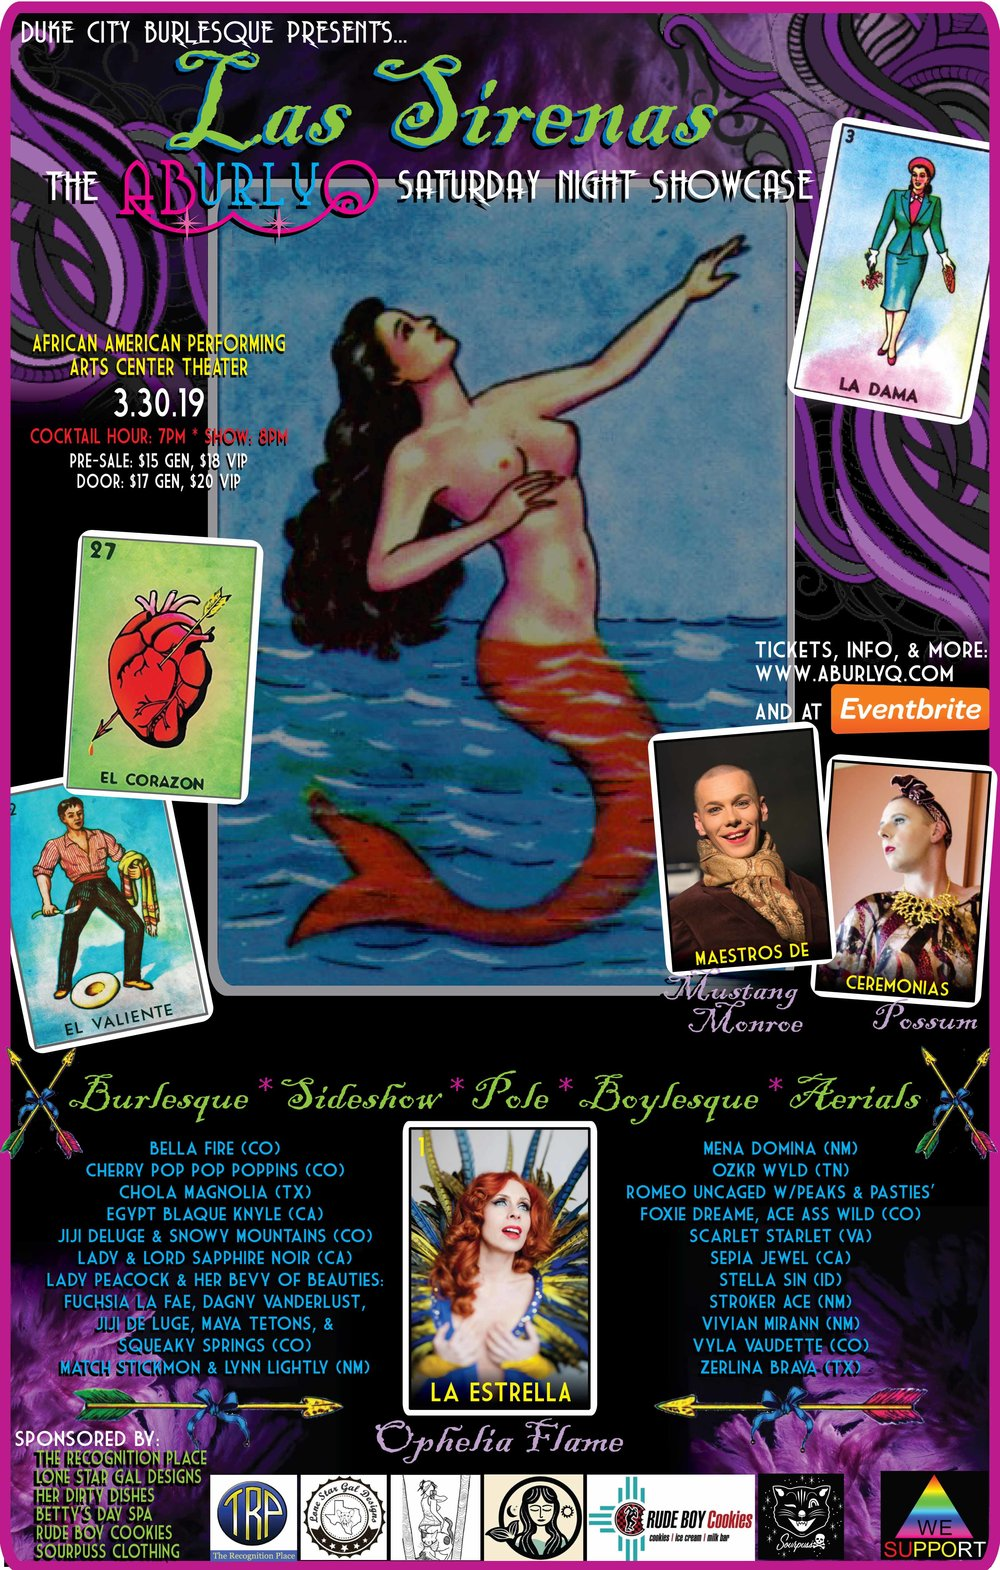 Saturday Night - LAS SIRENAS// Starring: Ophelia Flame //Competition Categories:+ Best Burlesque Soloist+ Best Duet/Group+ Most Classic